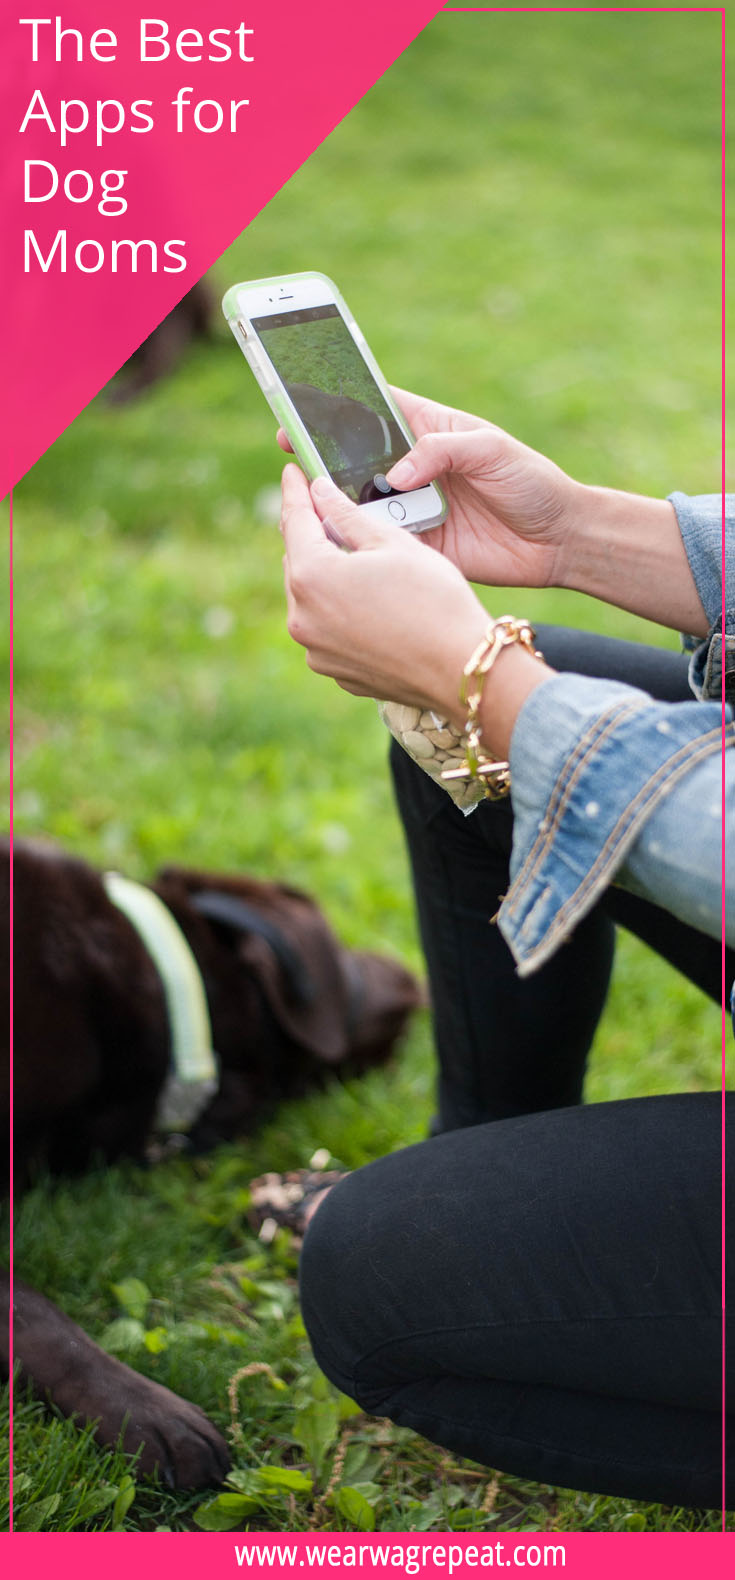 The Best Apps for Dog Moms